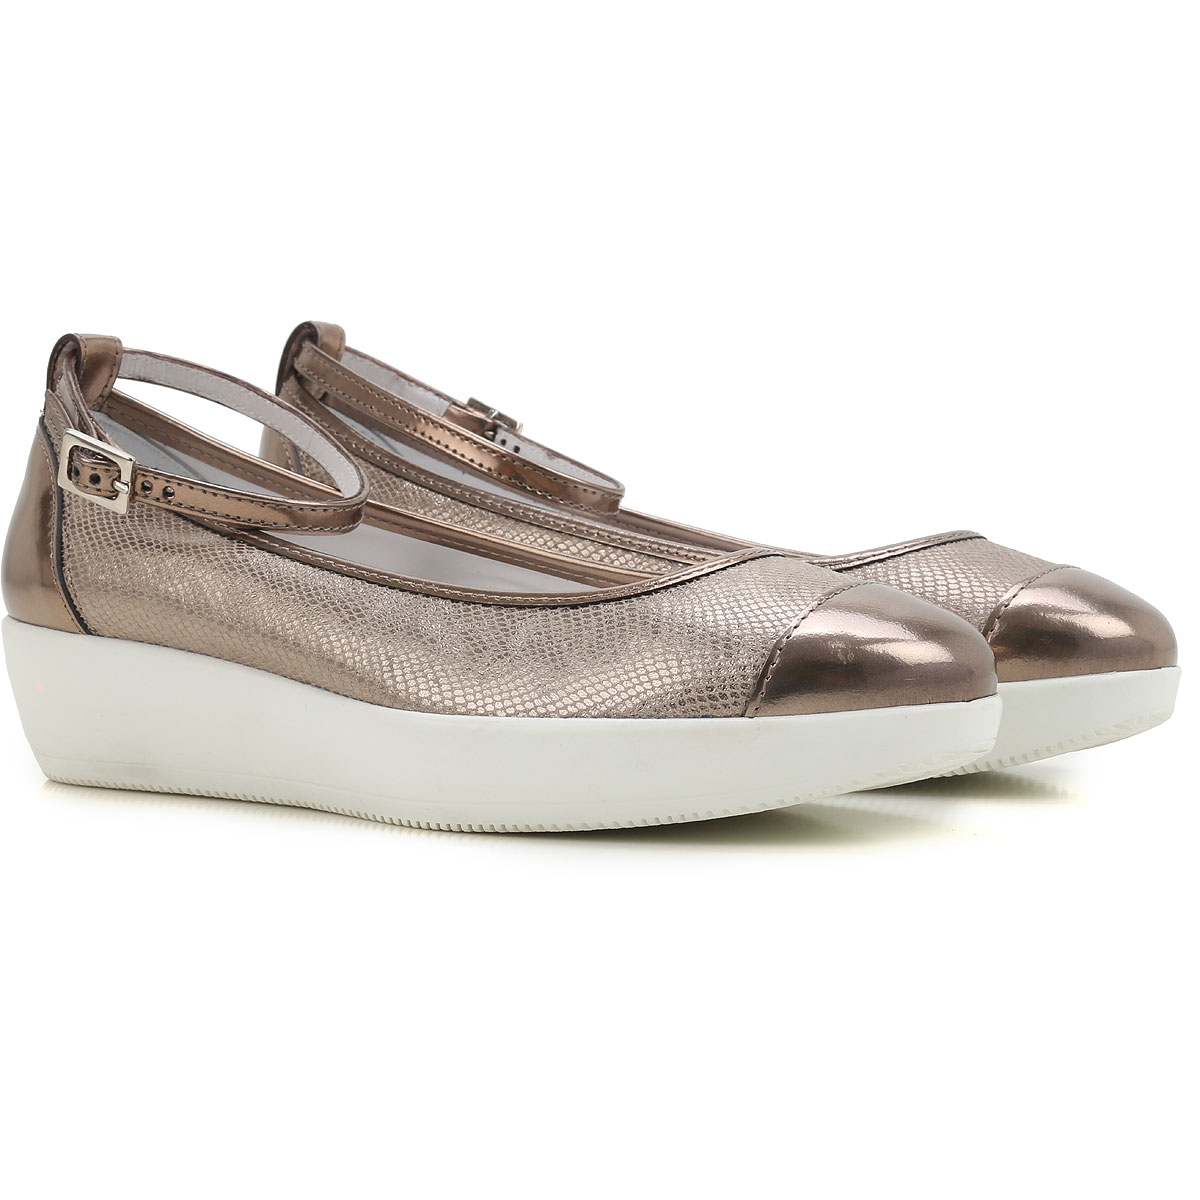 Image of Hogan Ballet Flats Ballerina Shoes for Women On Sale in Outlet, Stone, Leather, 2017, 5.5 6